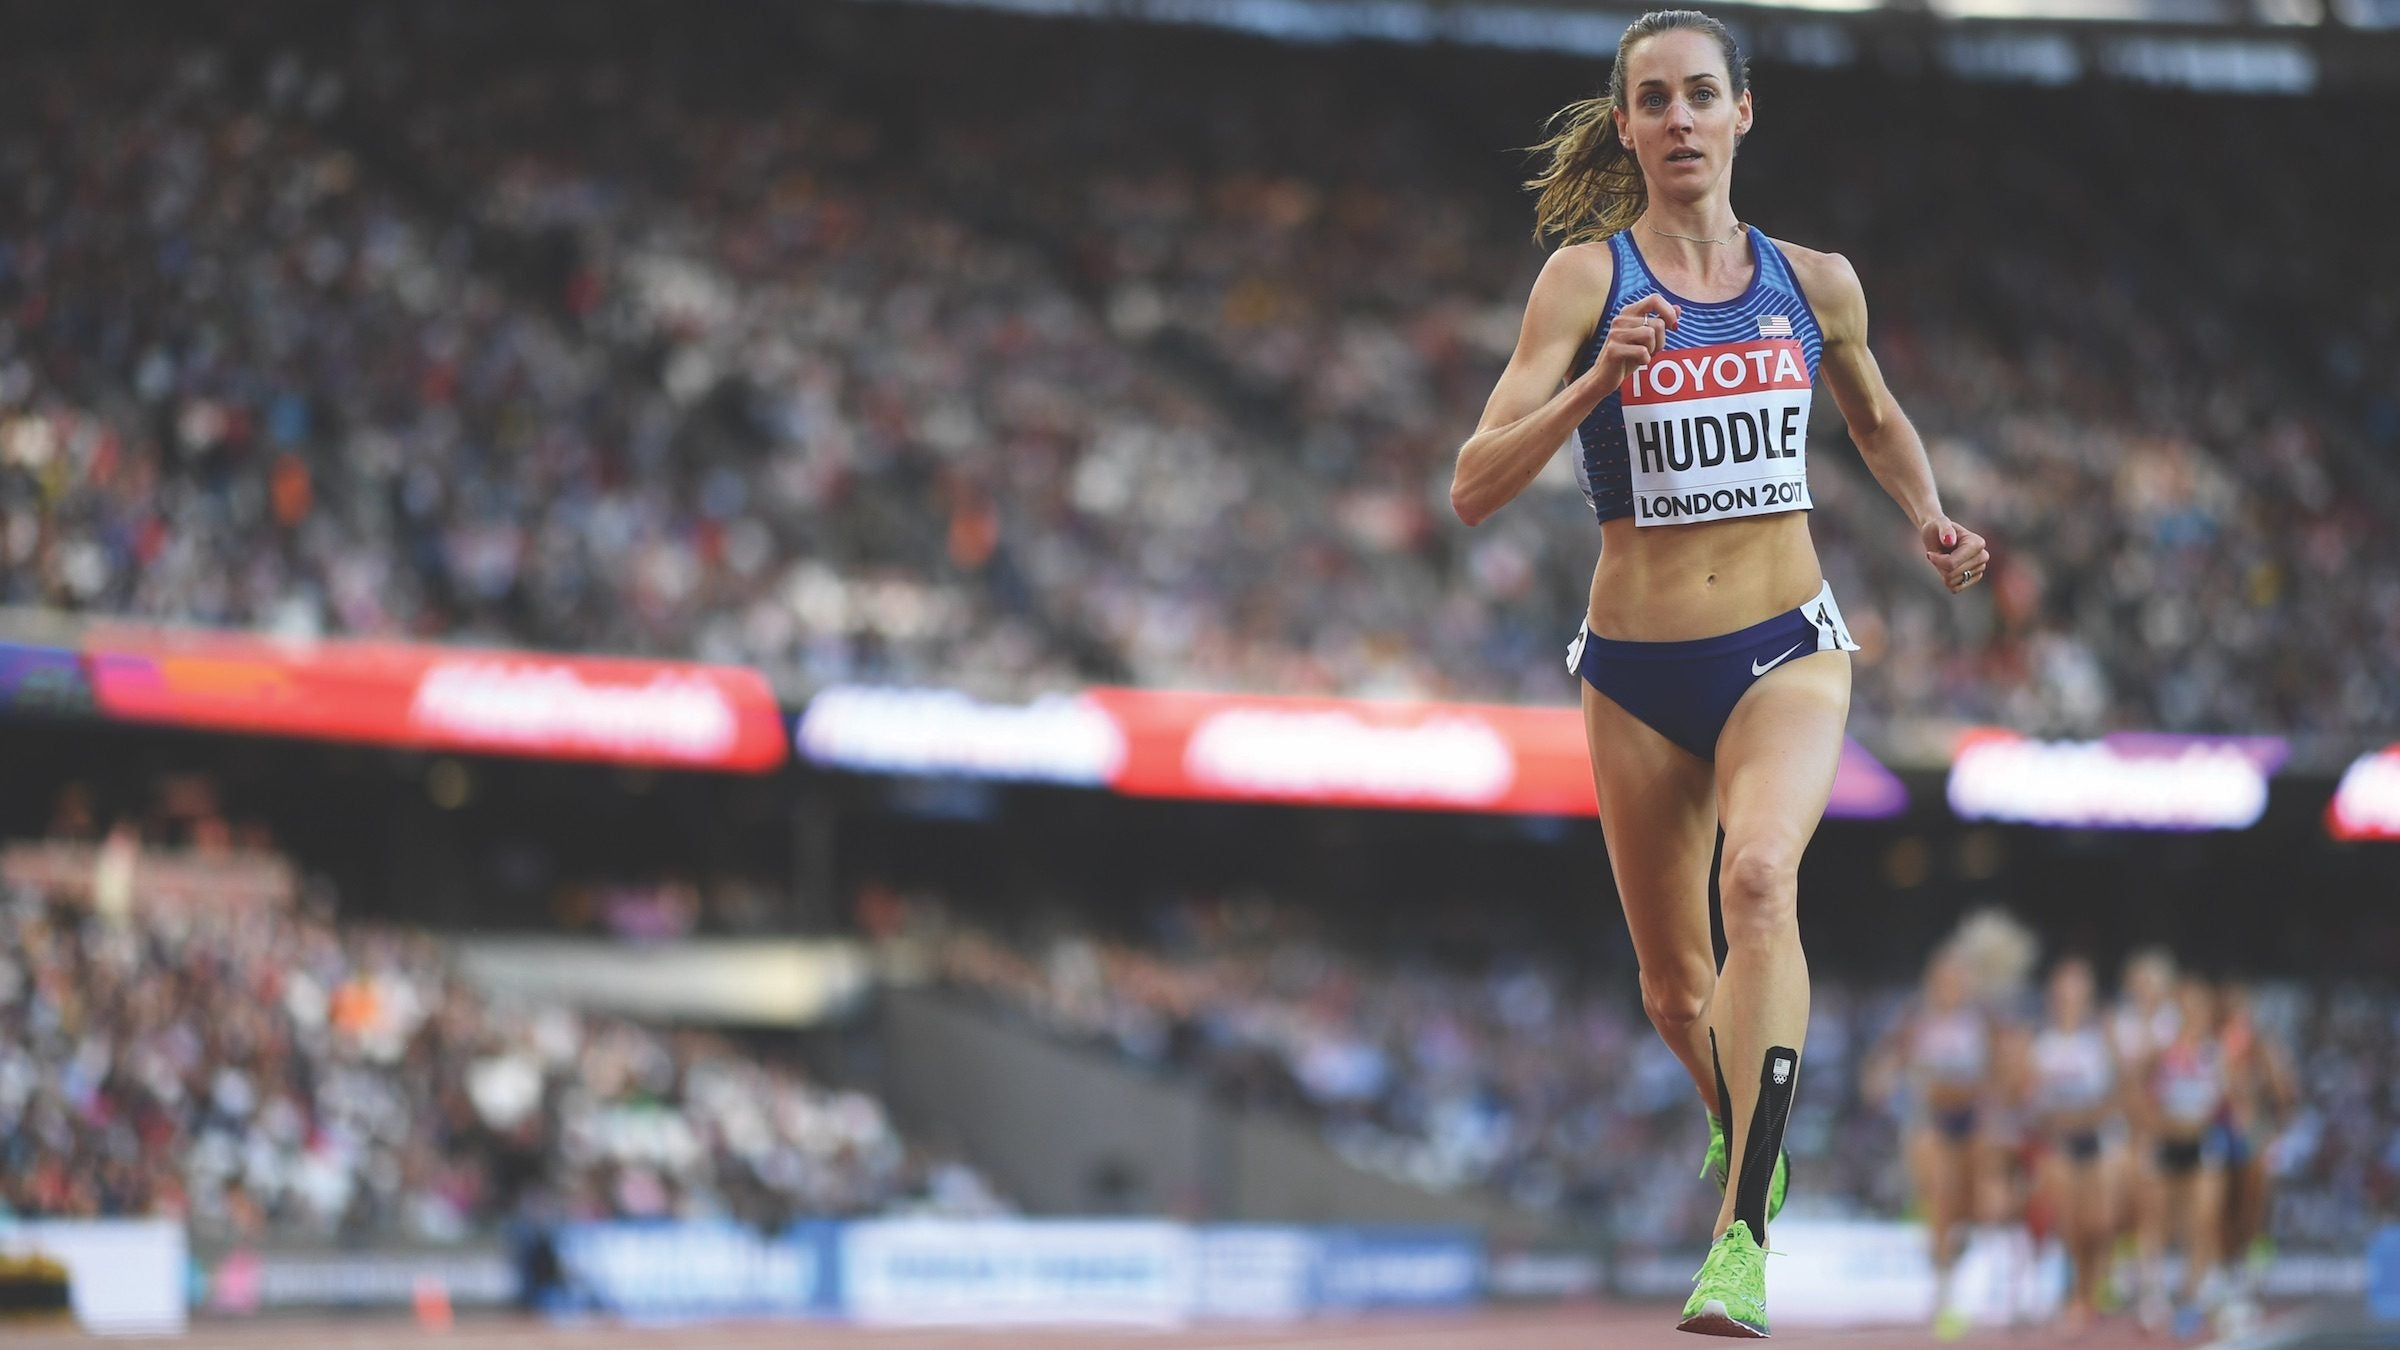 Molly Huddle competes in the 5,000 on the track